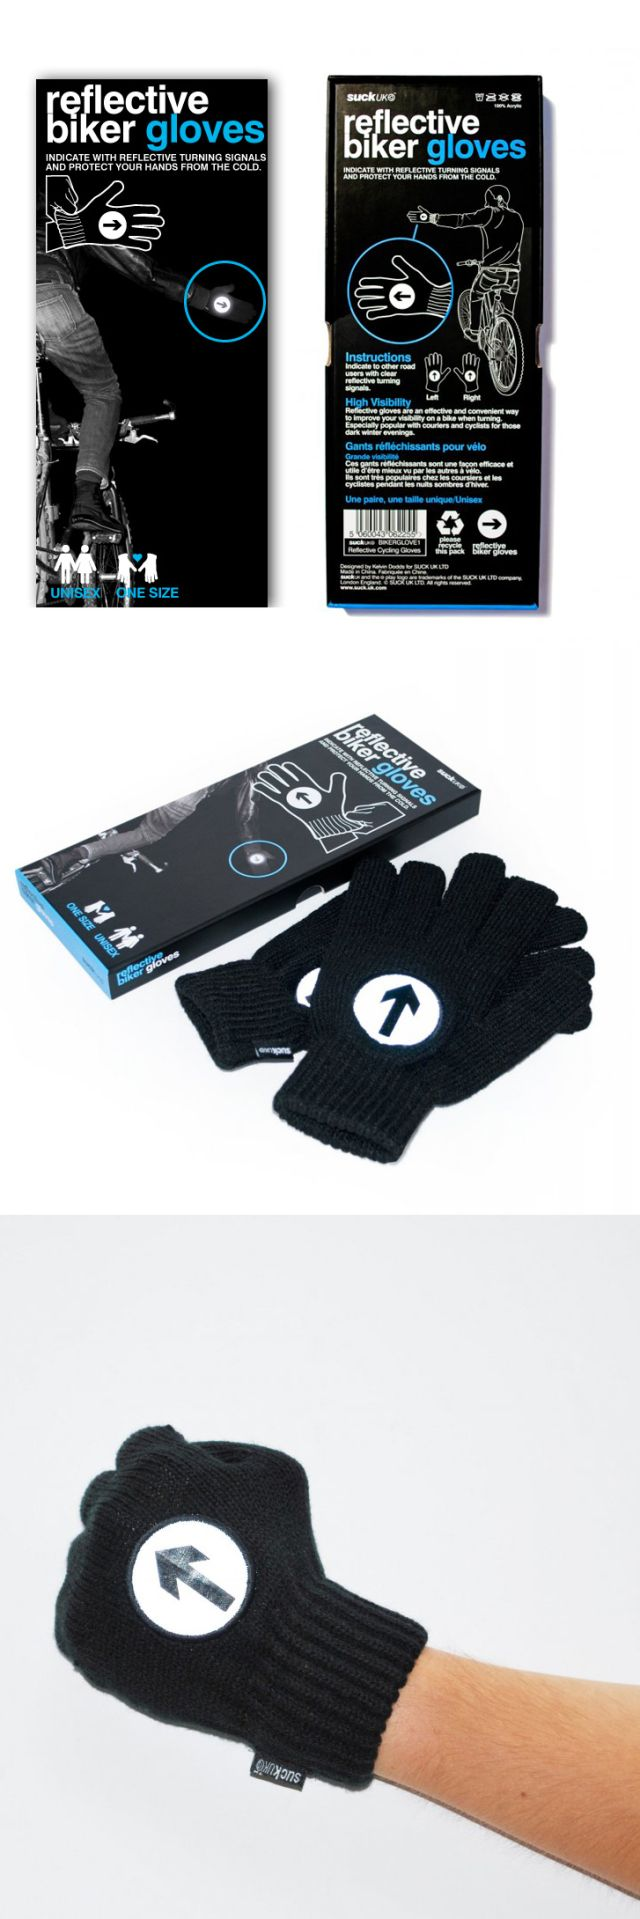 Reflective bicycling gloves.